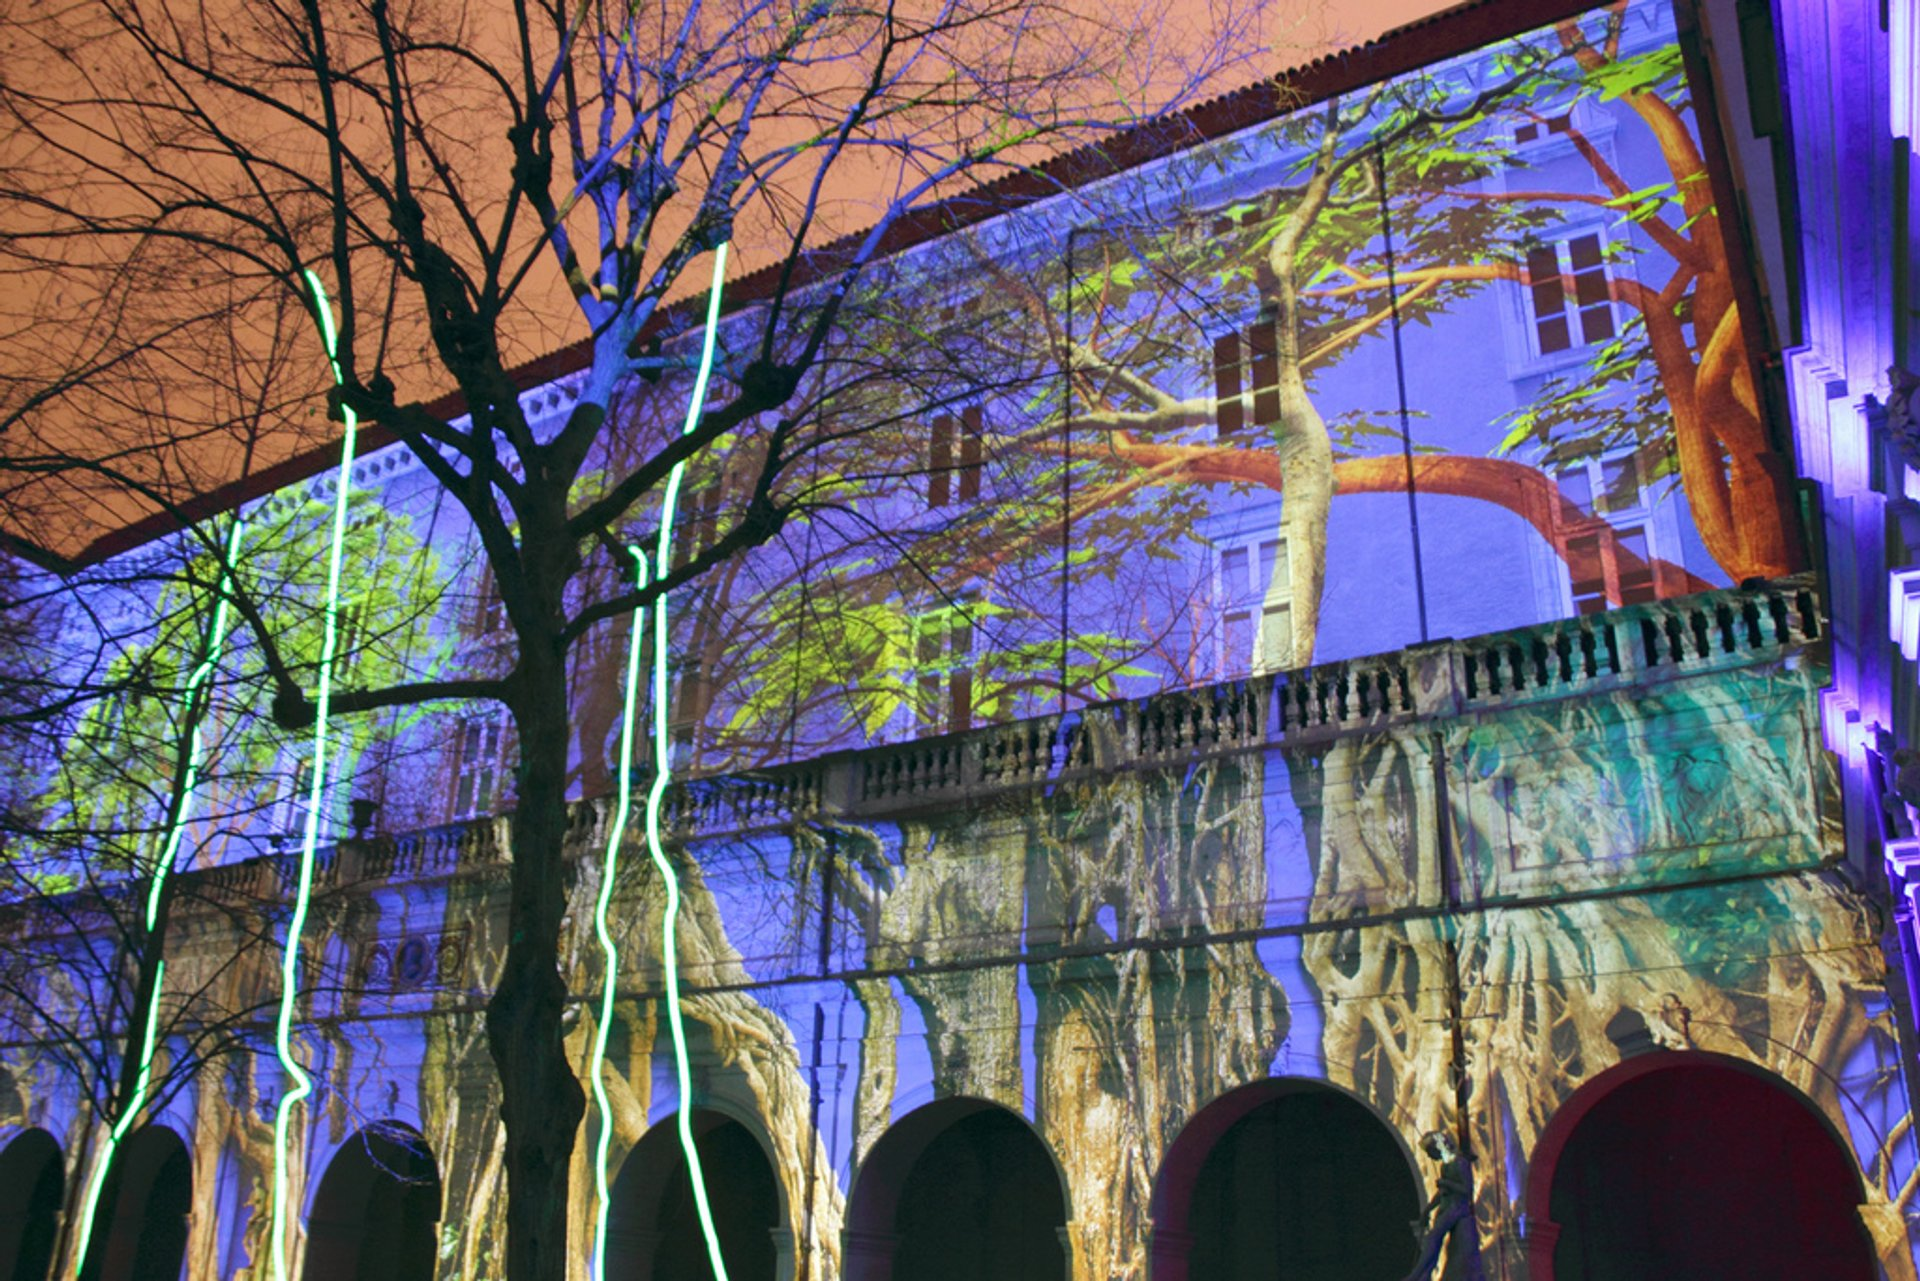 Lyon Festival of Lights (Fête des Lumières) in France - Best Season 2019